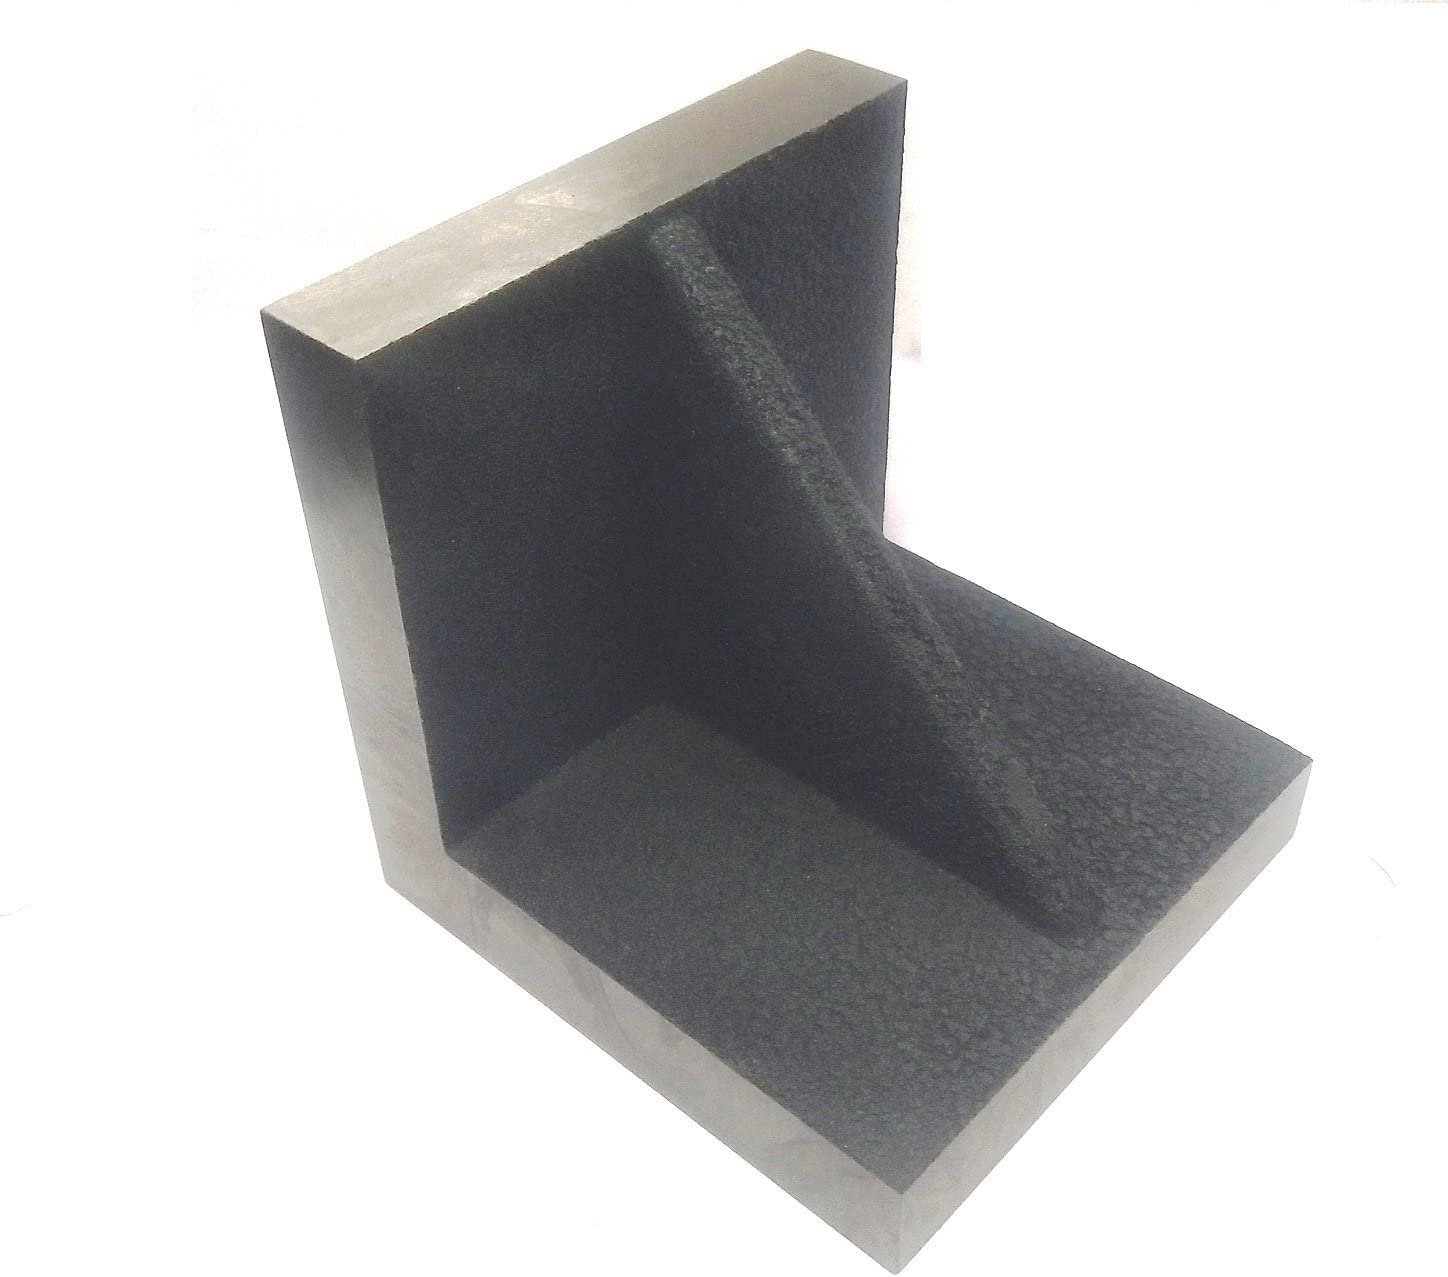 Caste Iron Solid Webbed Angle Plate 4 x 4 x 4 Stress Relieved